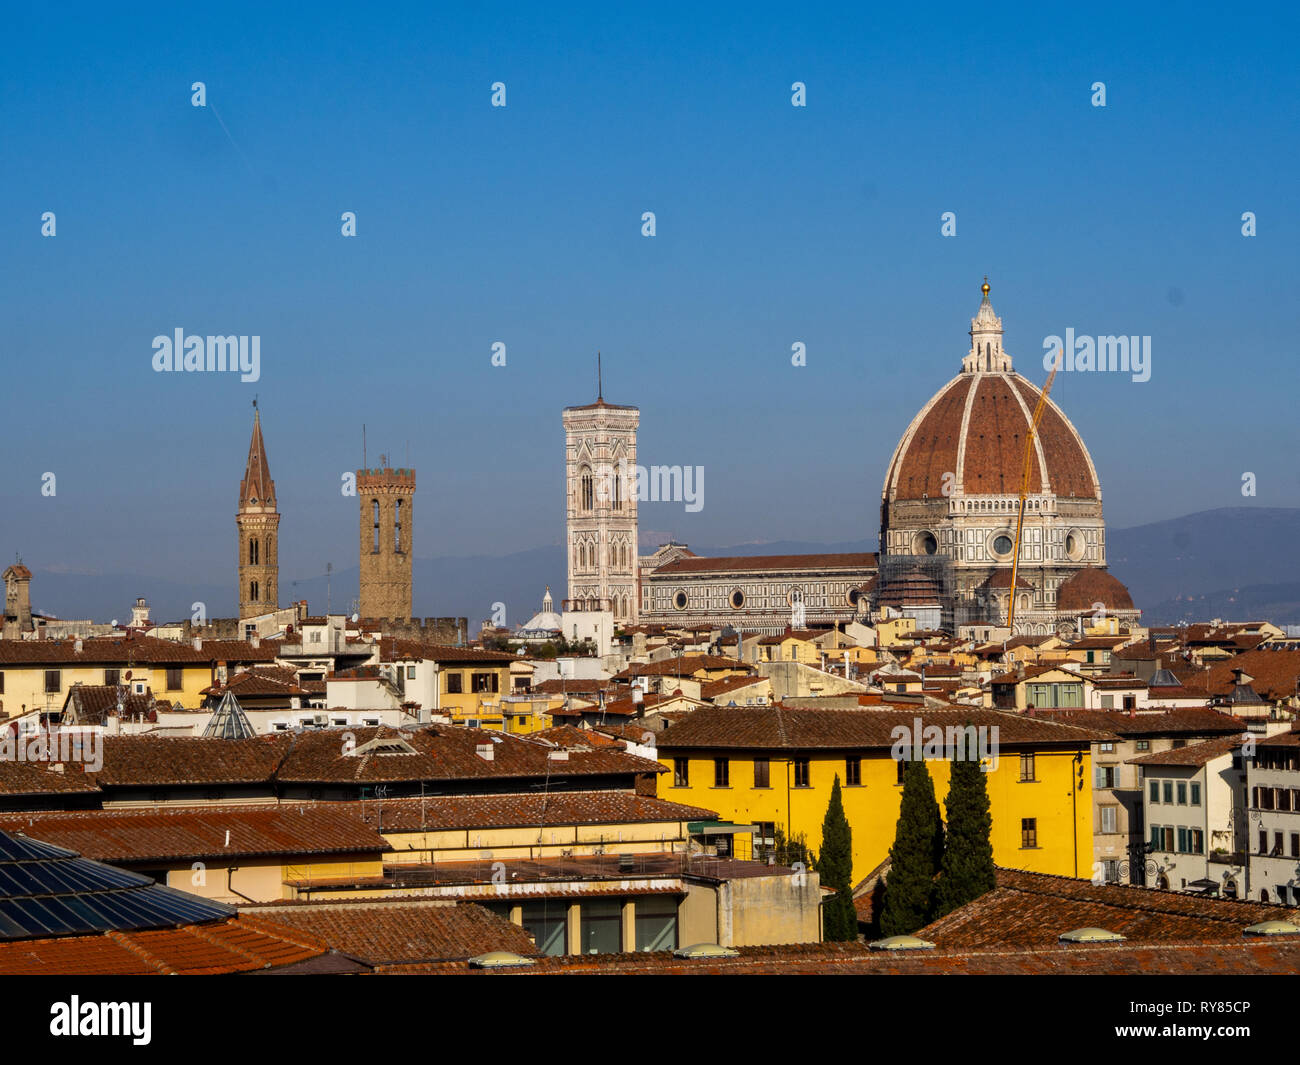 Cathedral of Santa Maria del Fiore, in Florence and its baptistery seen from afar Stock Photo